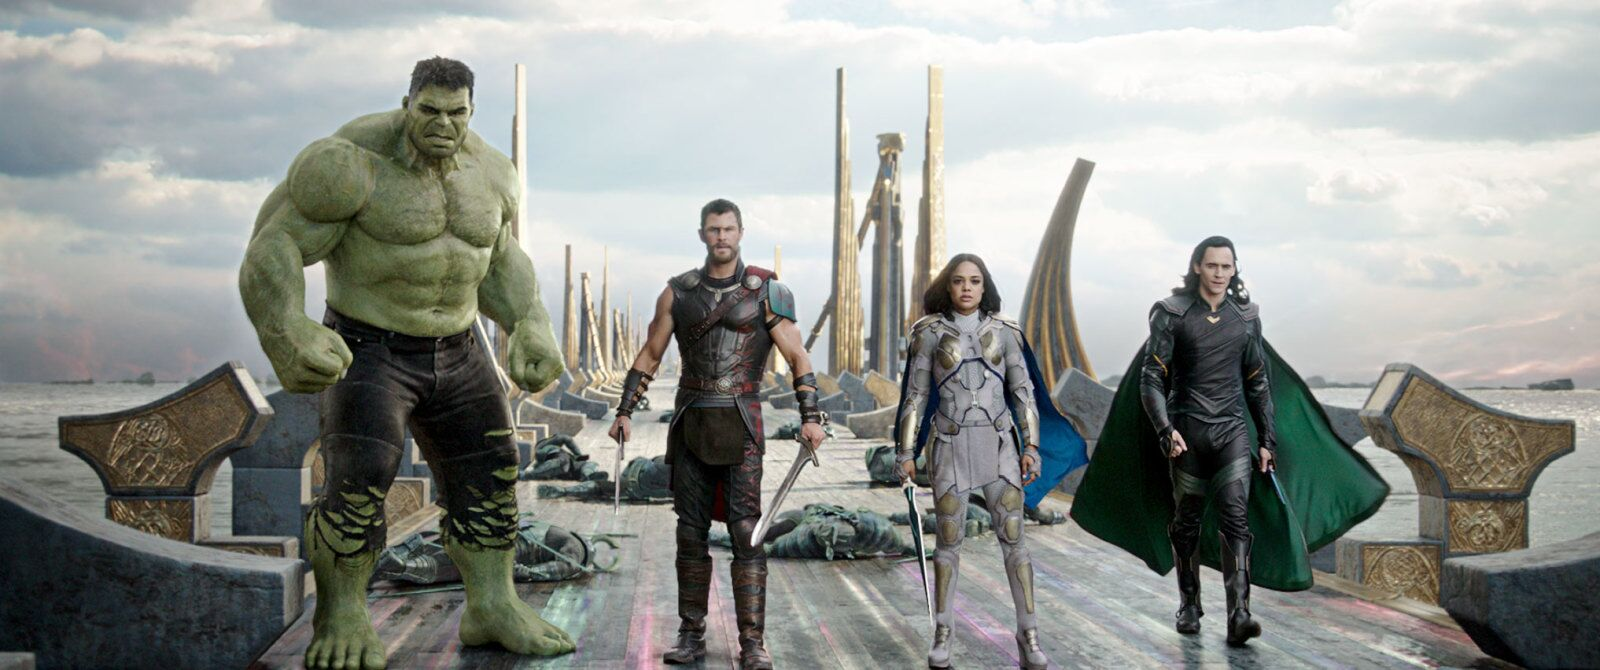 Thor: Ragnarok is leaving Netflix later this year